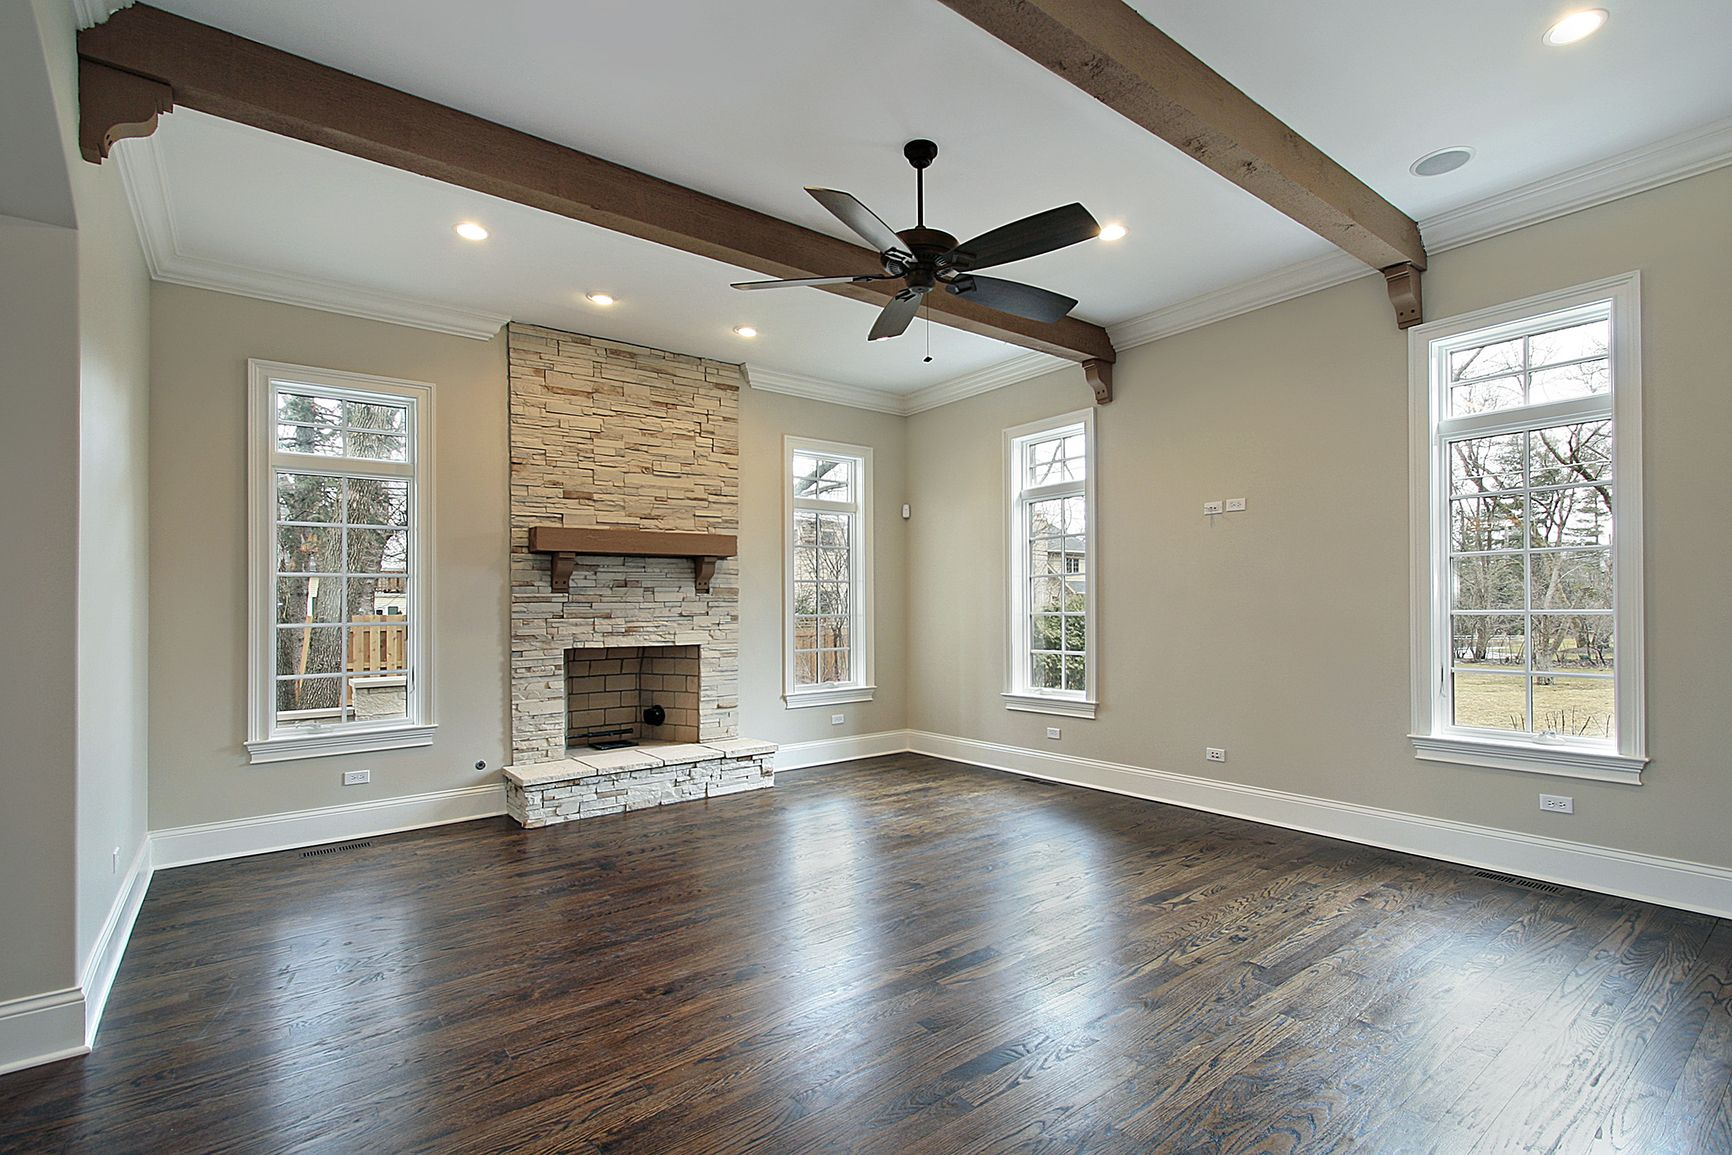 painted wood.beems | Family room with ceiling wood beams | Home ...